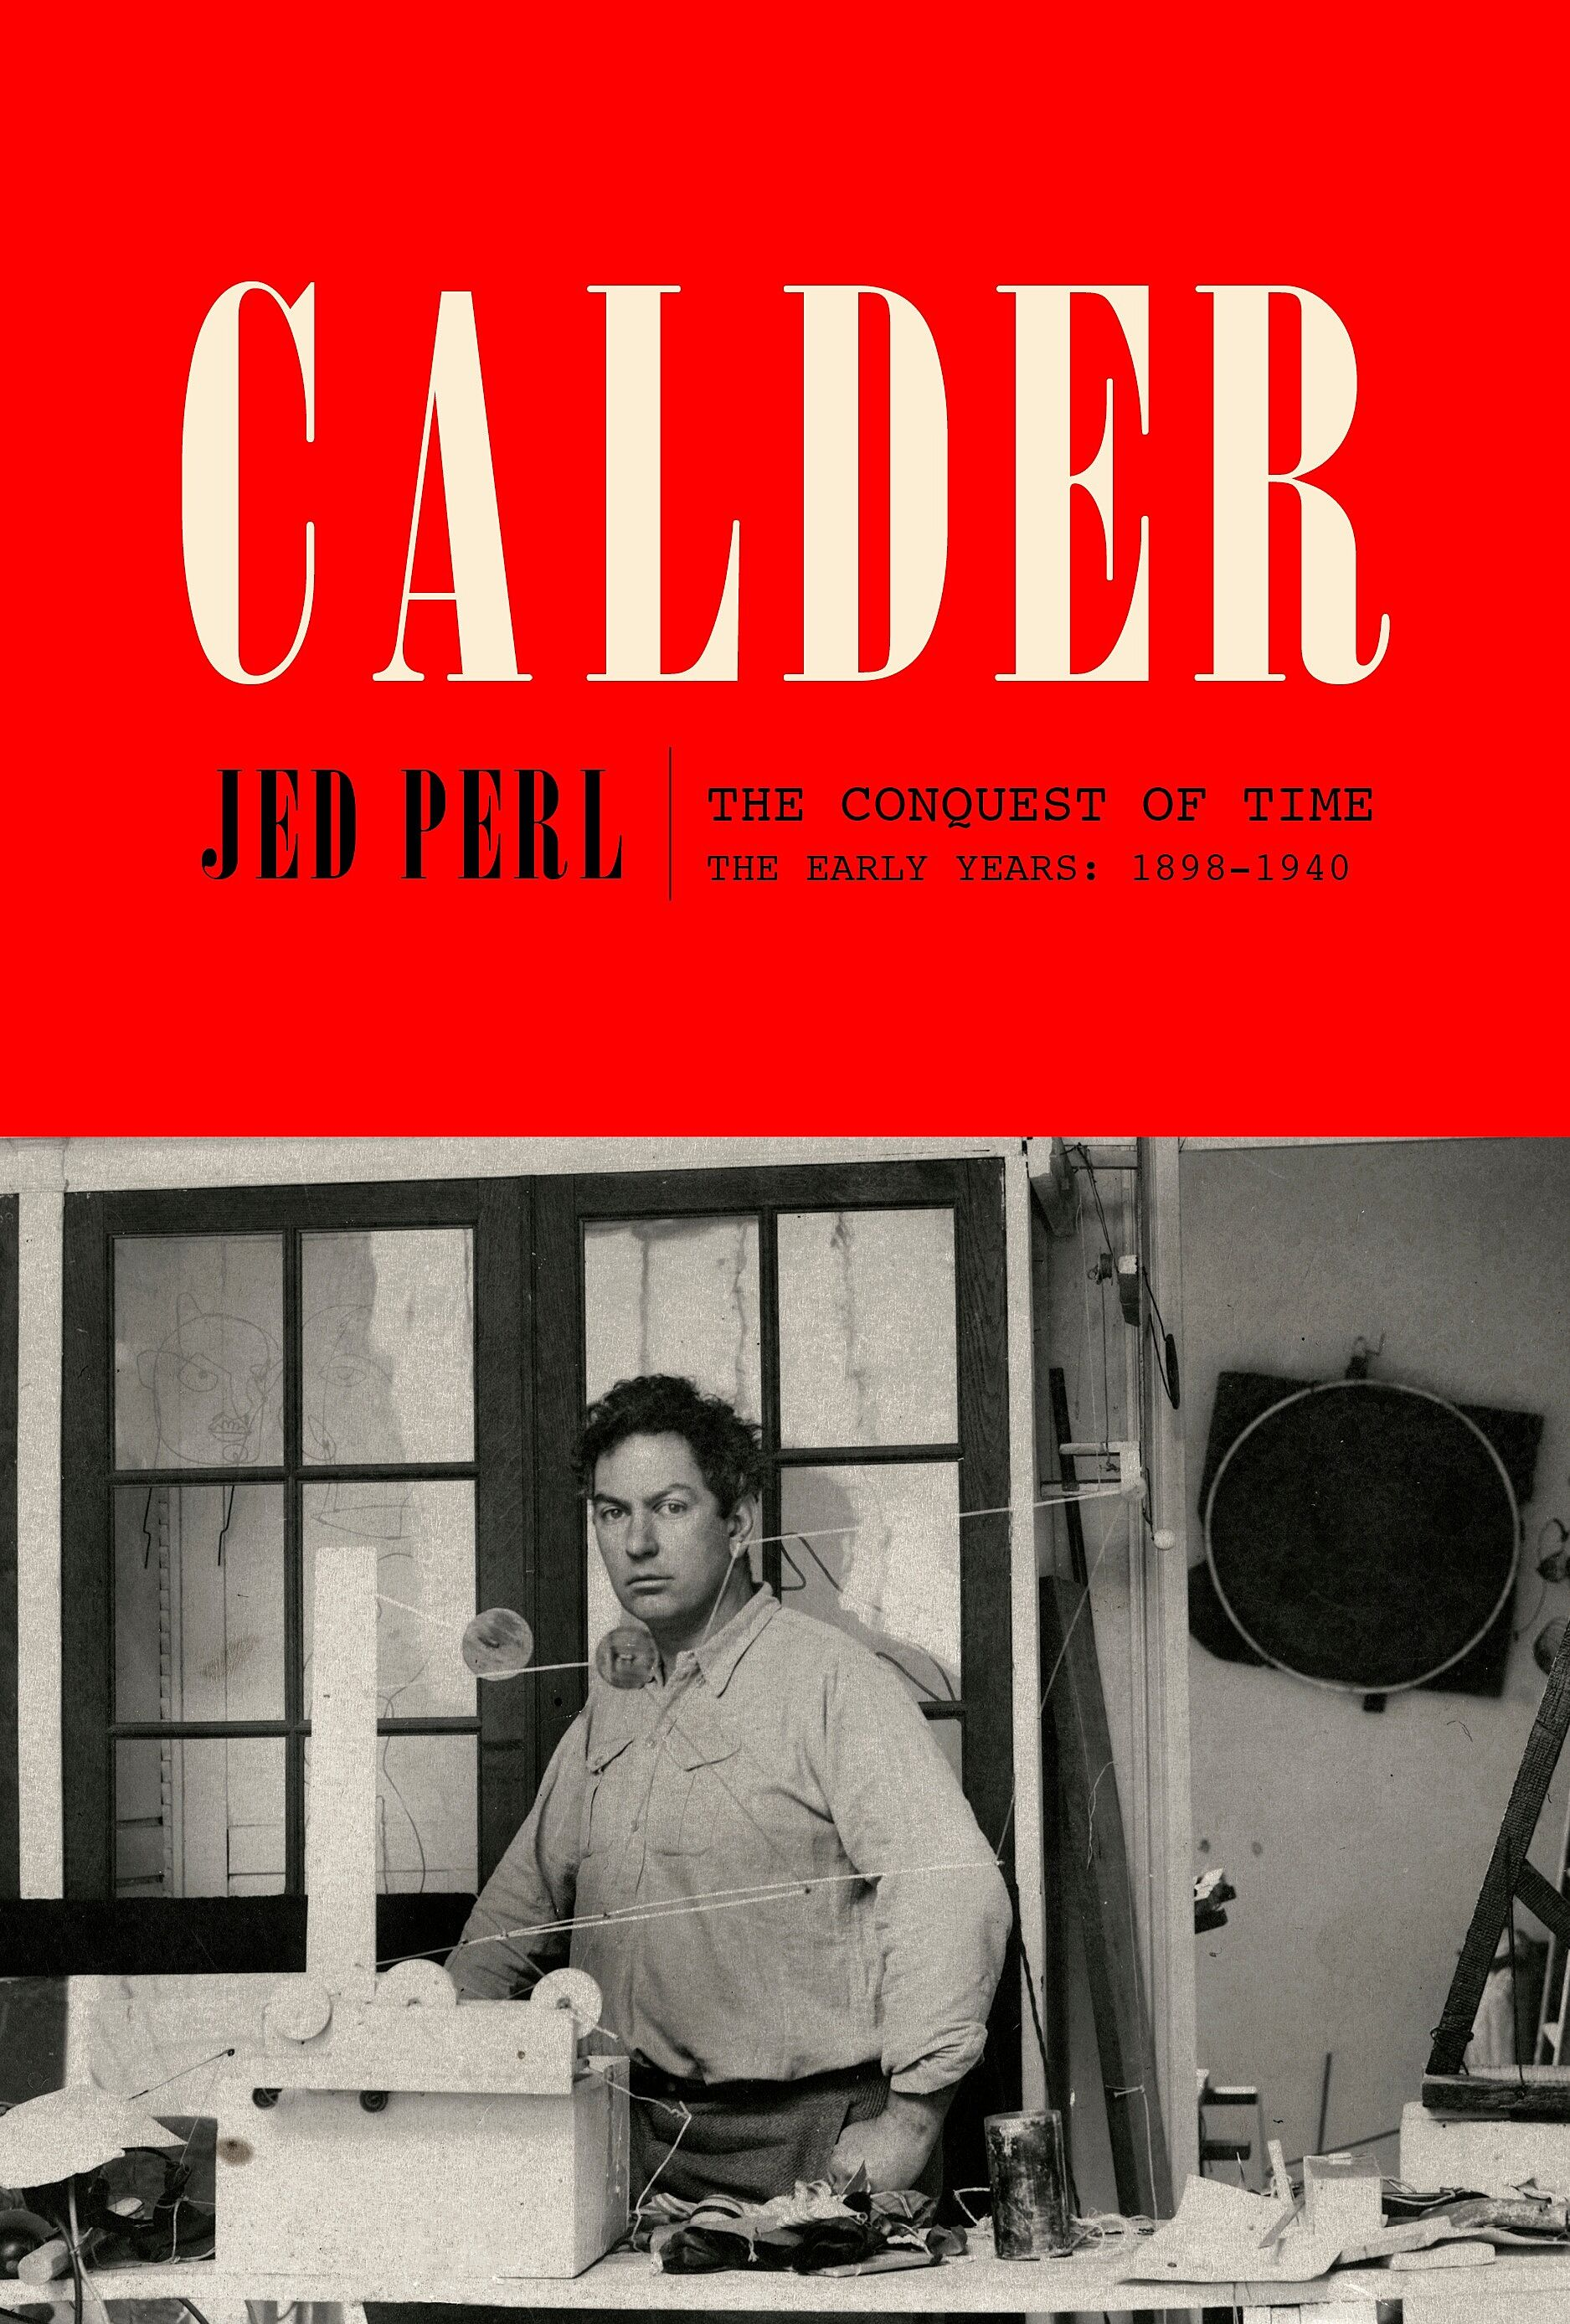 Book jacket for Calder: The Conquest of Time: The Early Years: 1898–1940 by Jed Perl.